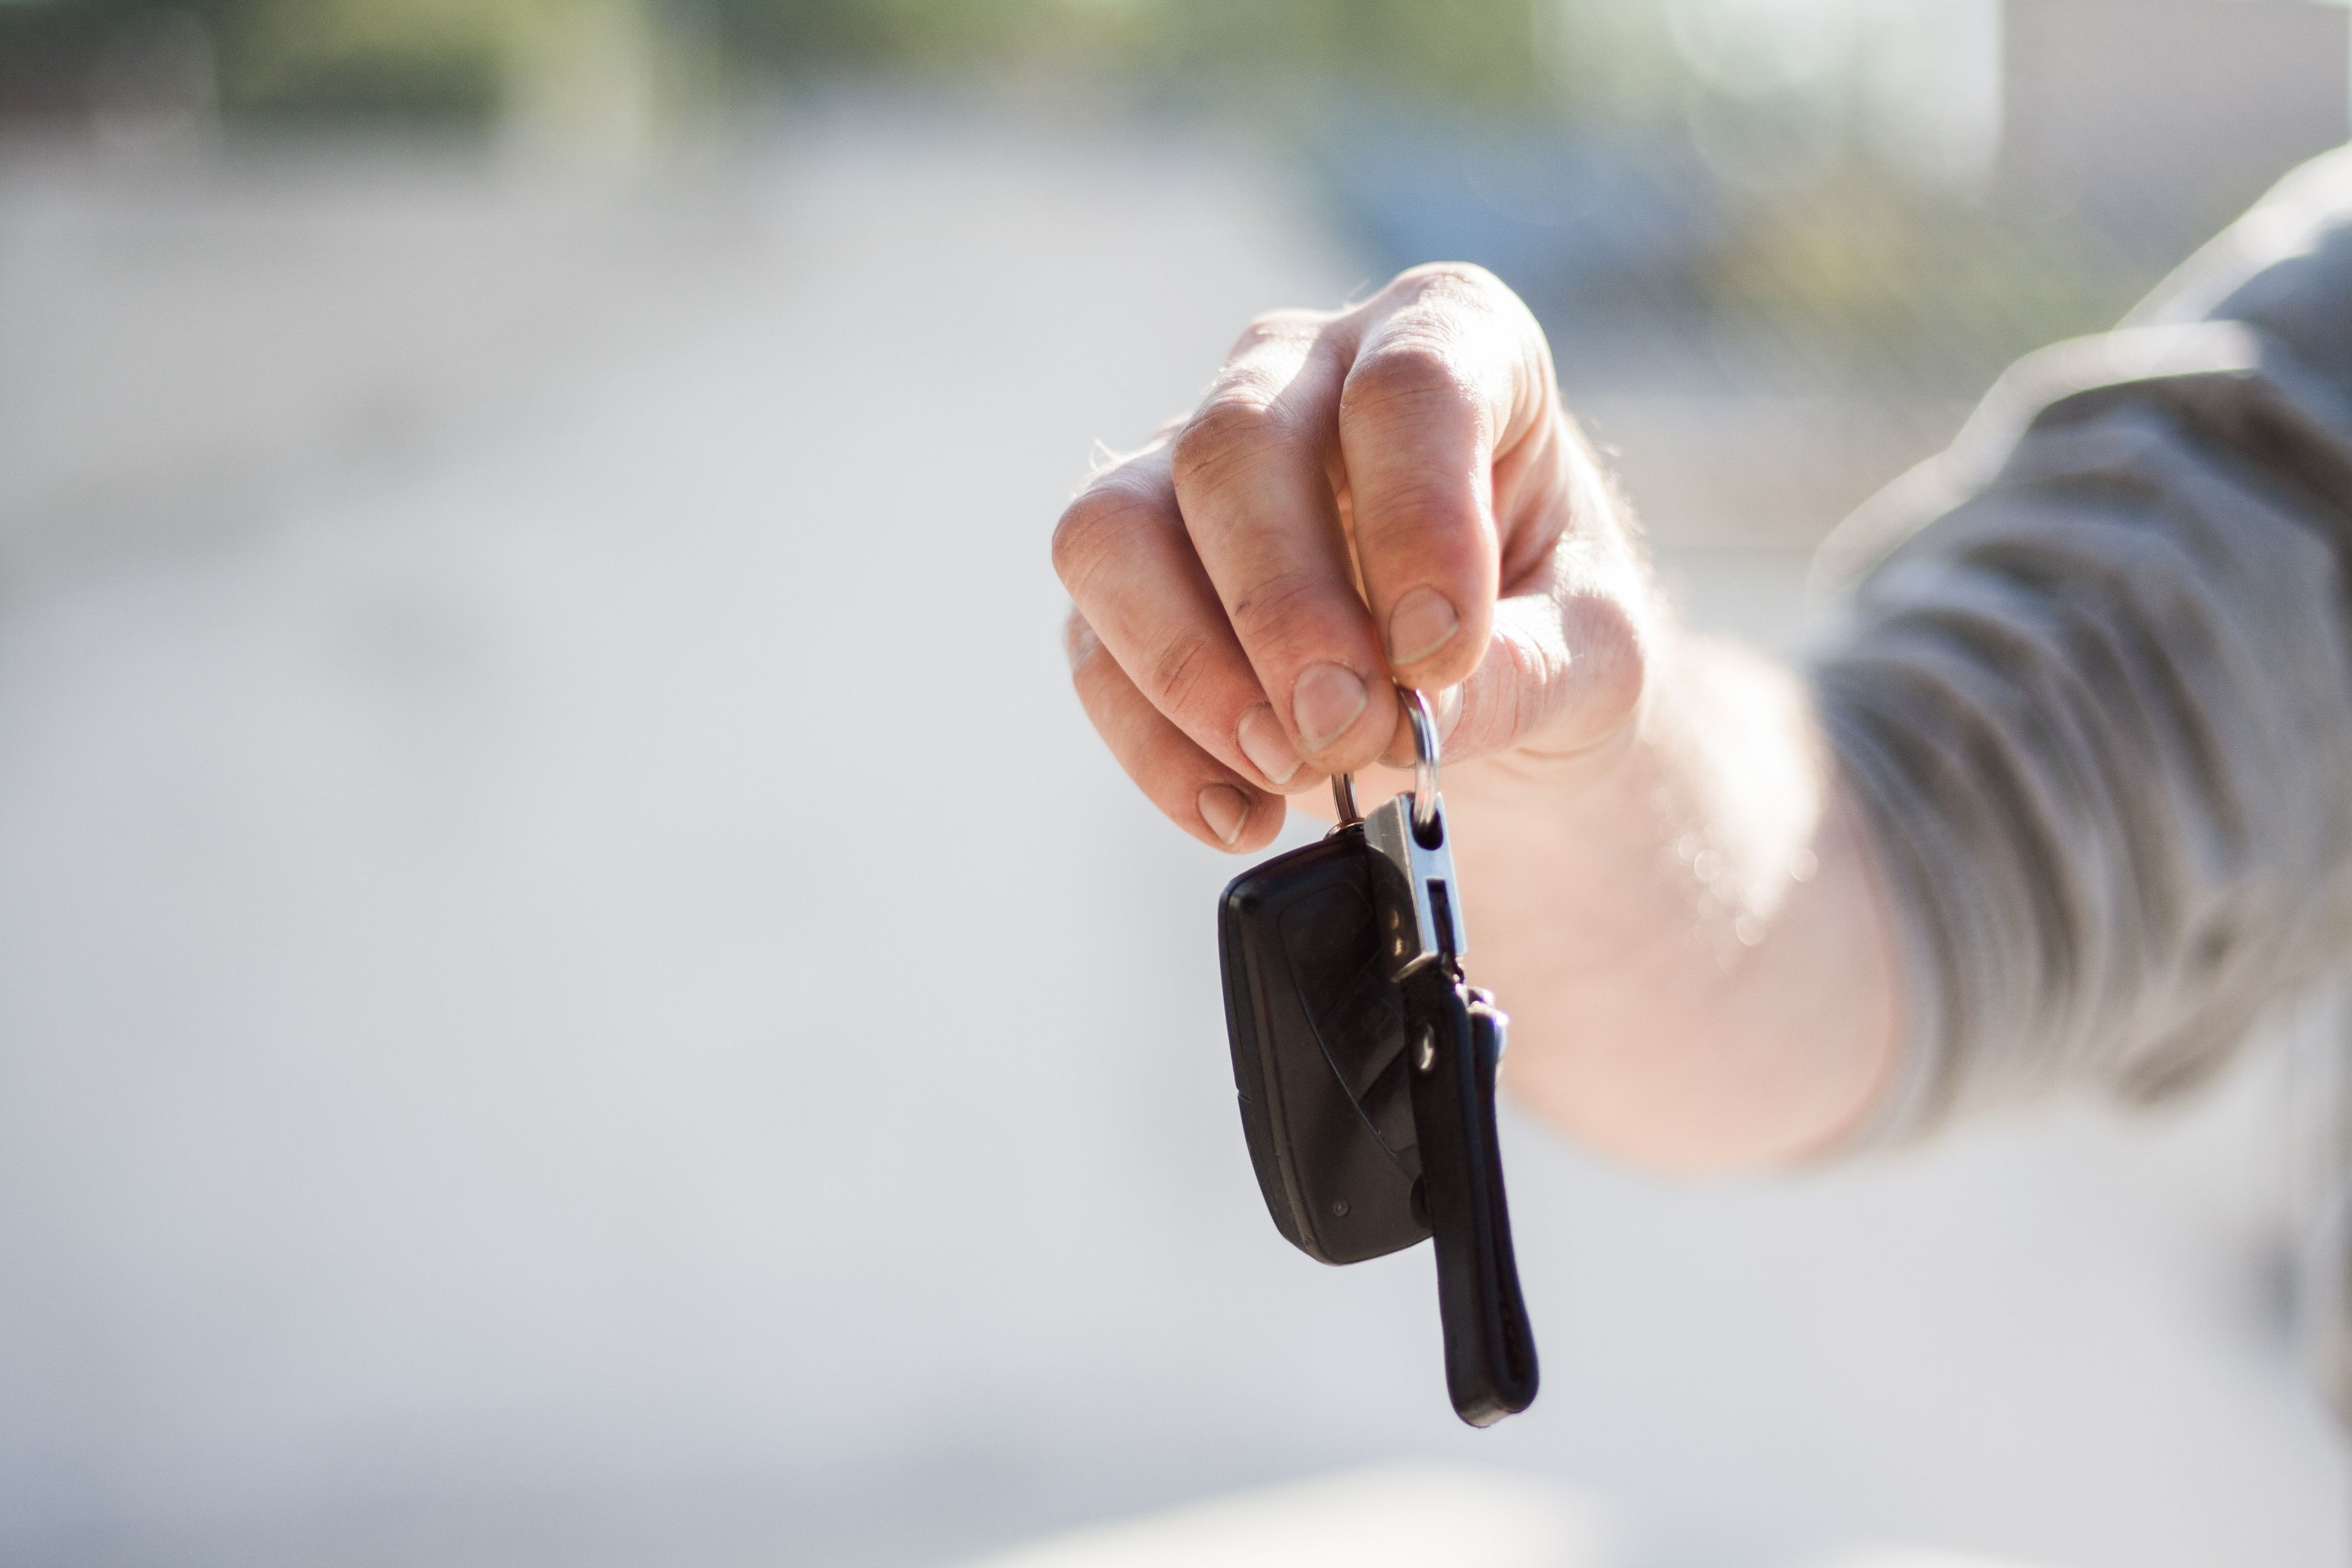 How To Get A Florida Used Car Dealer License Step By Step Instructions